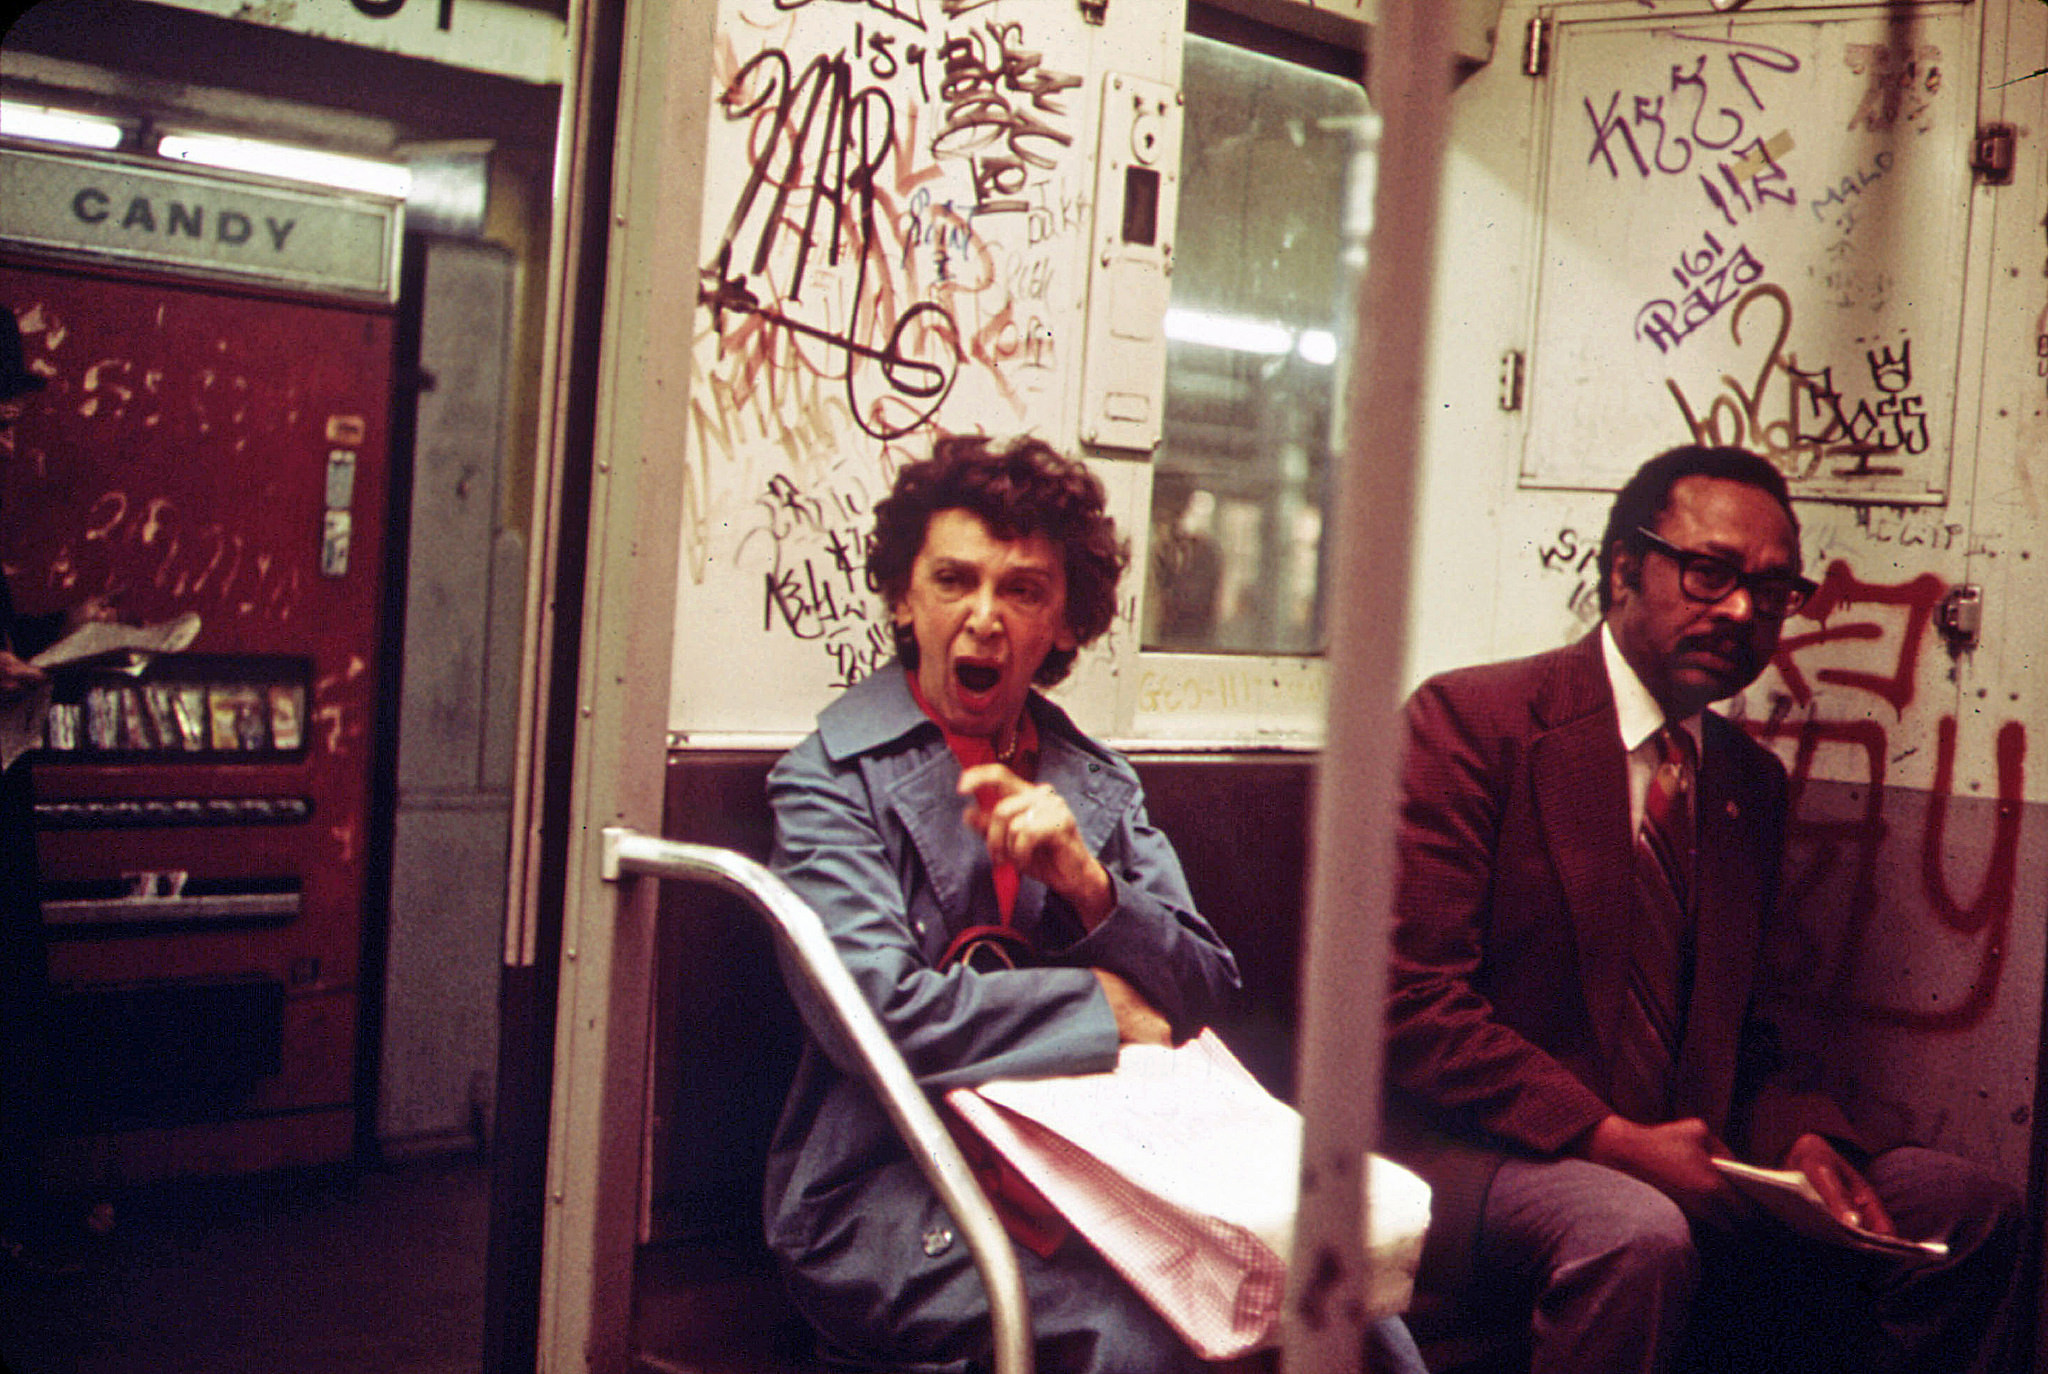 The usual graffiti adorns the interior. New York. May 1975